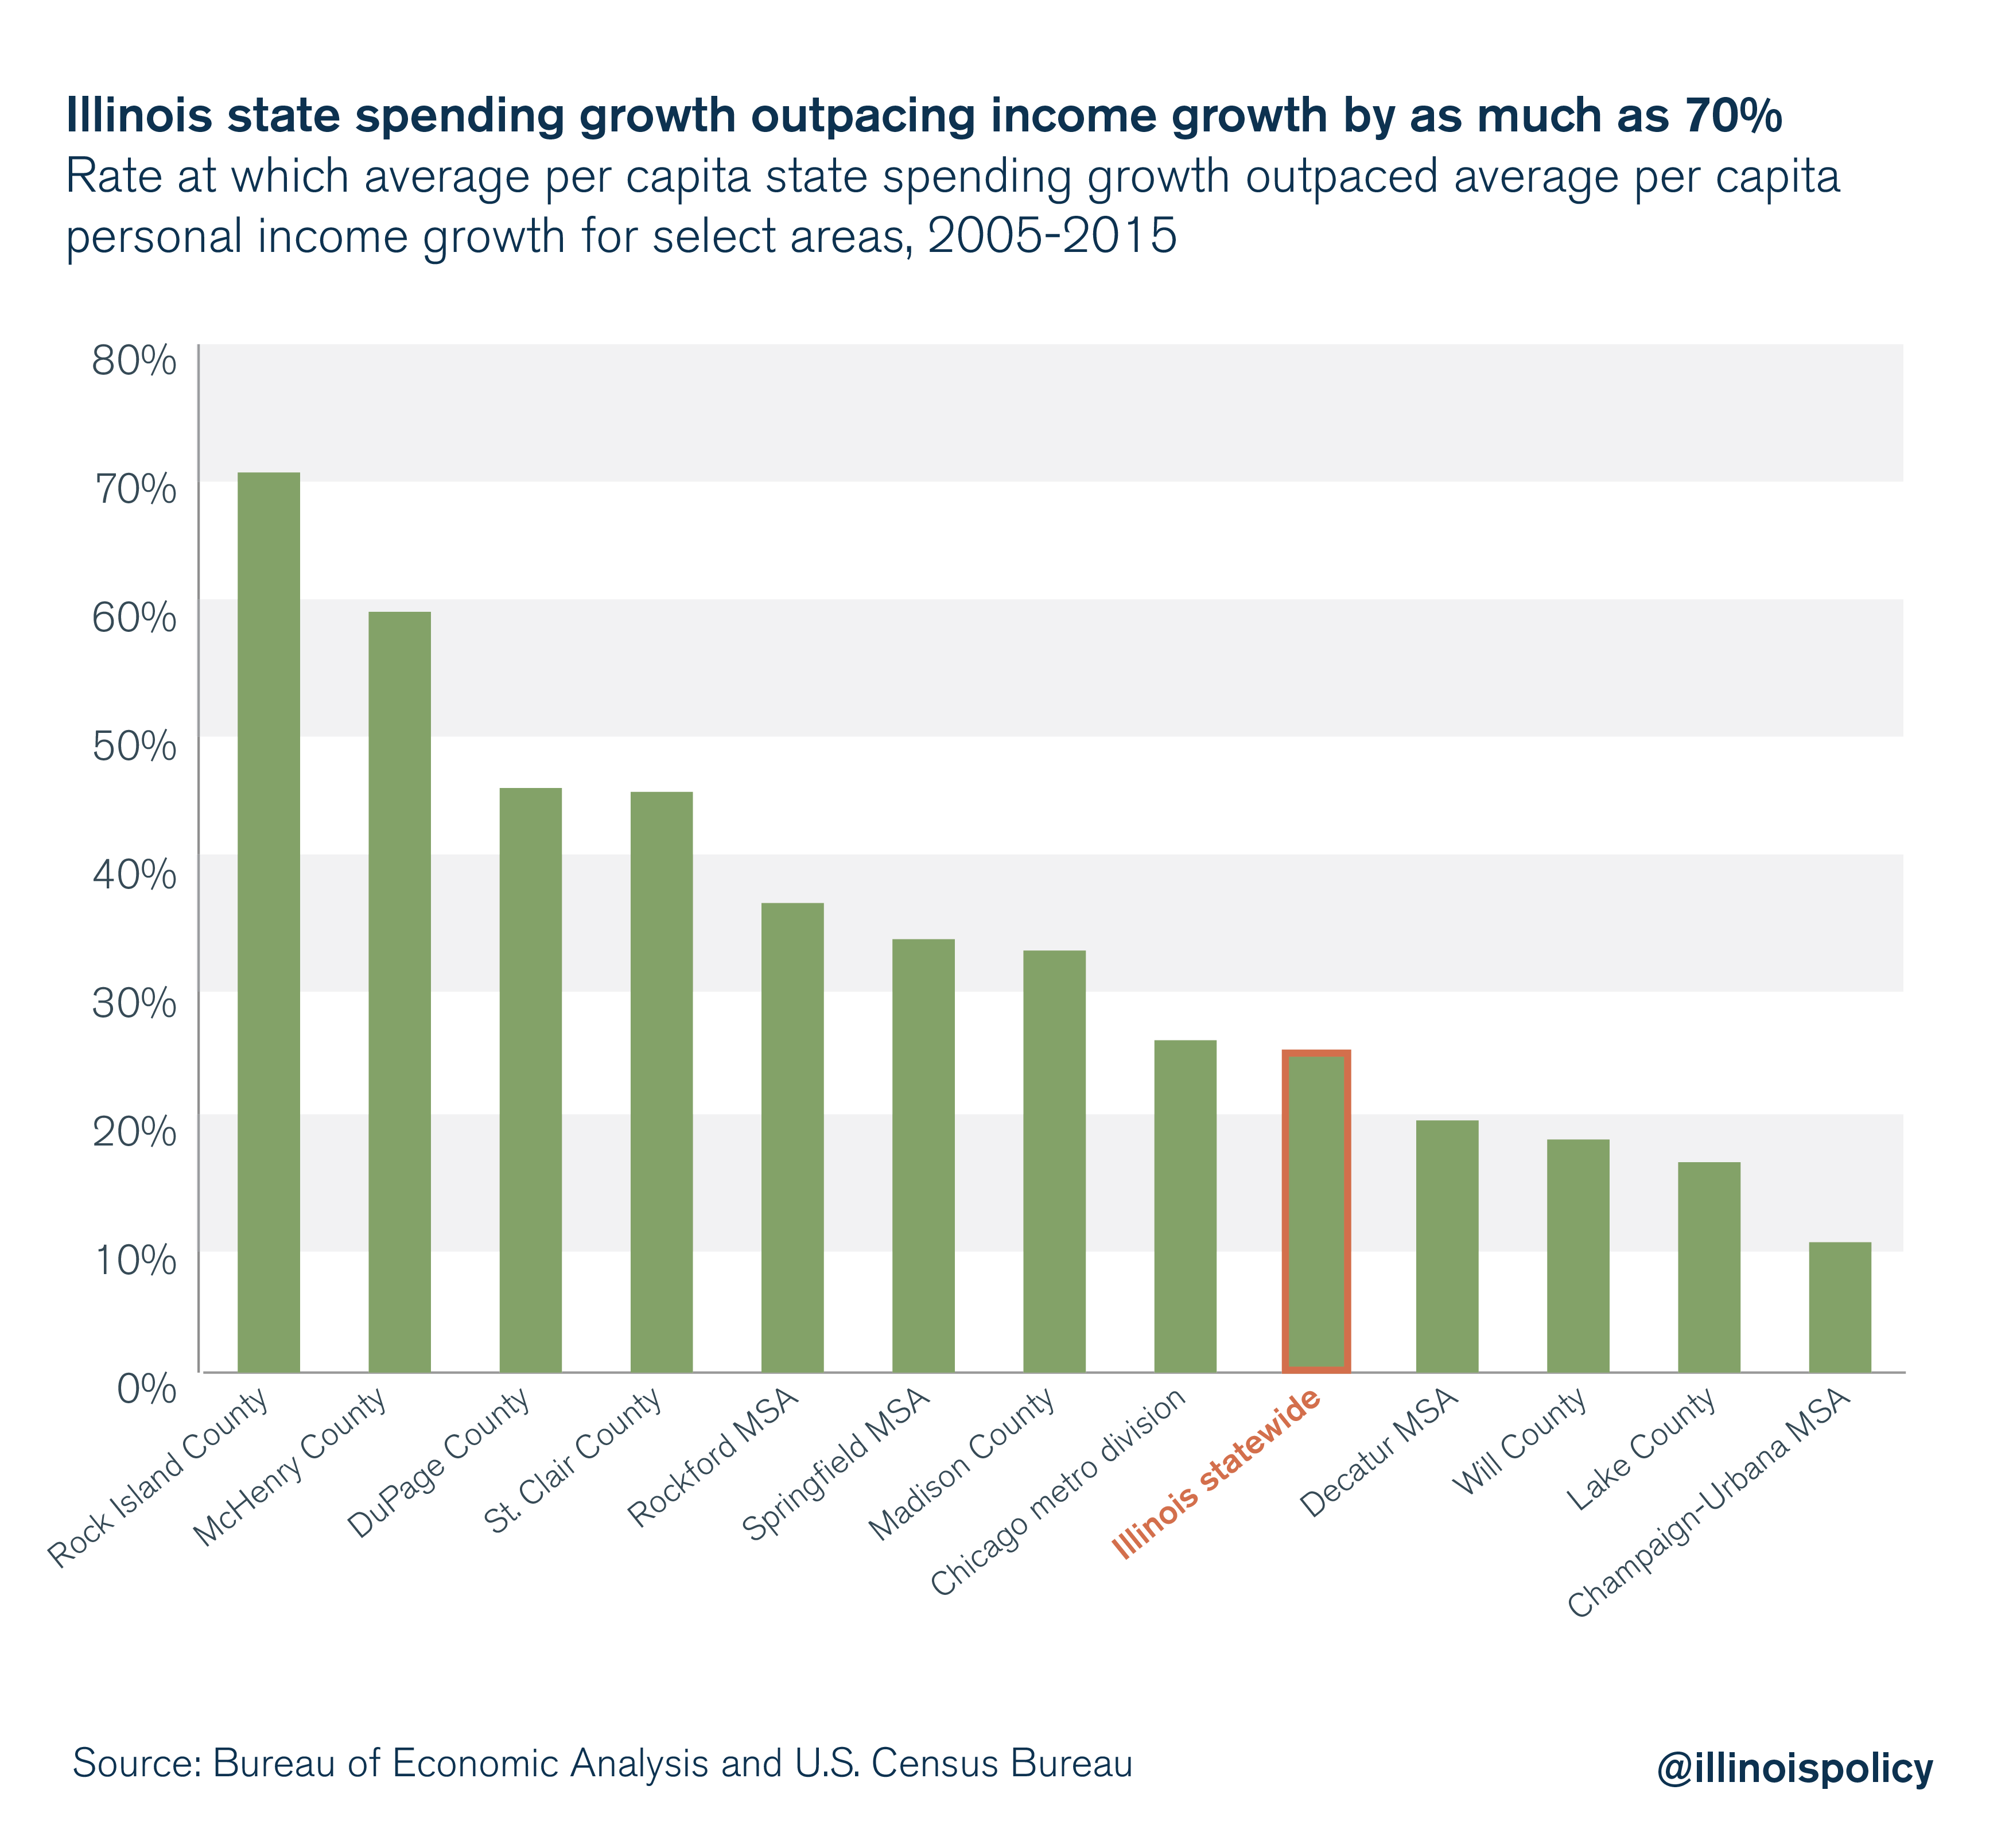 Illinois state spending growth outpacing income growth by as much as 70%